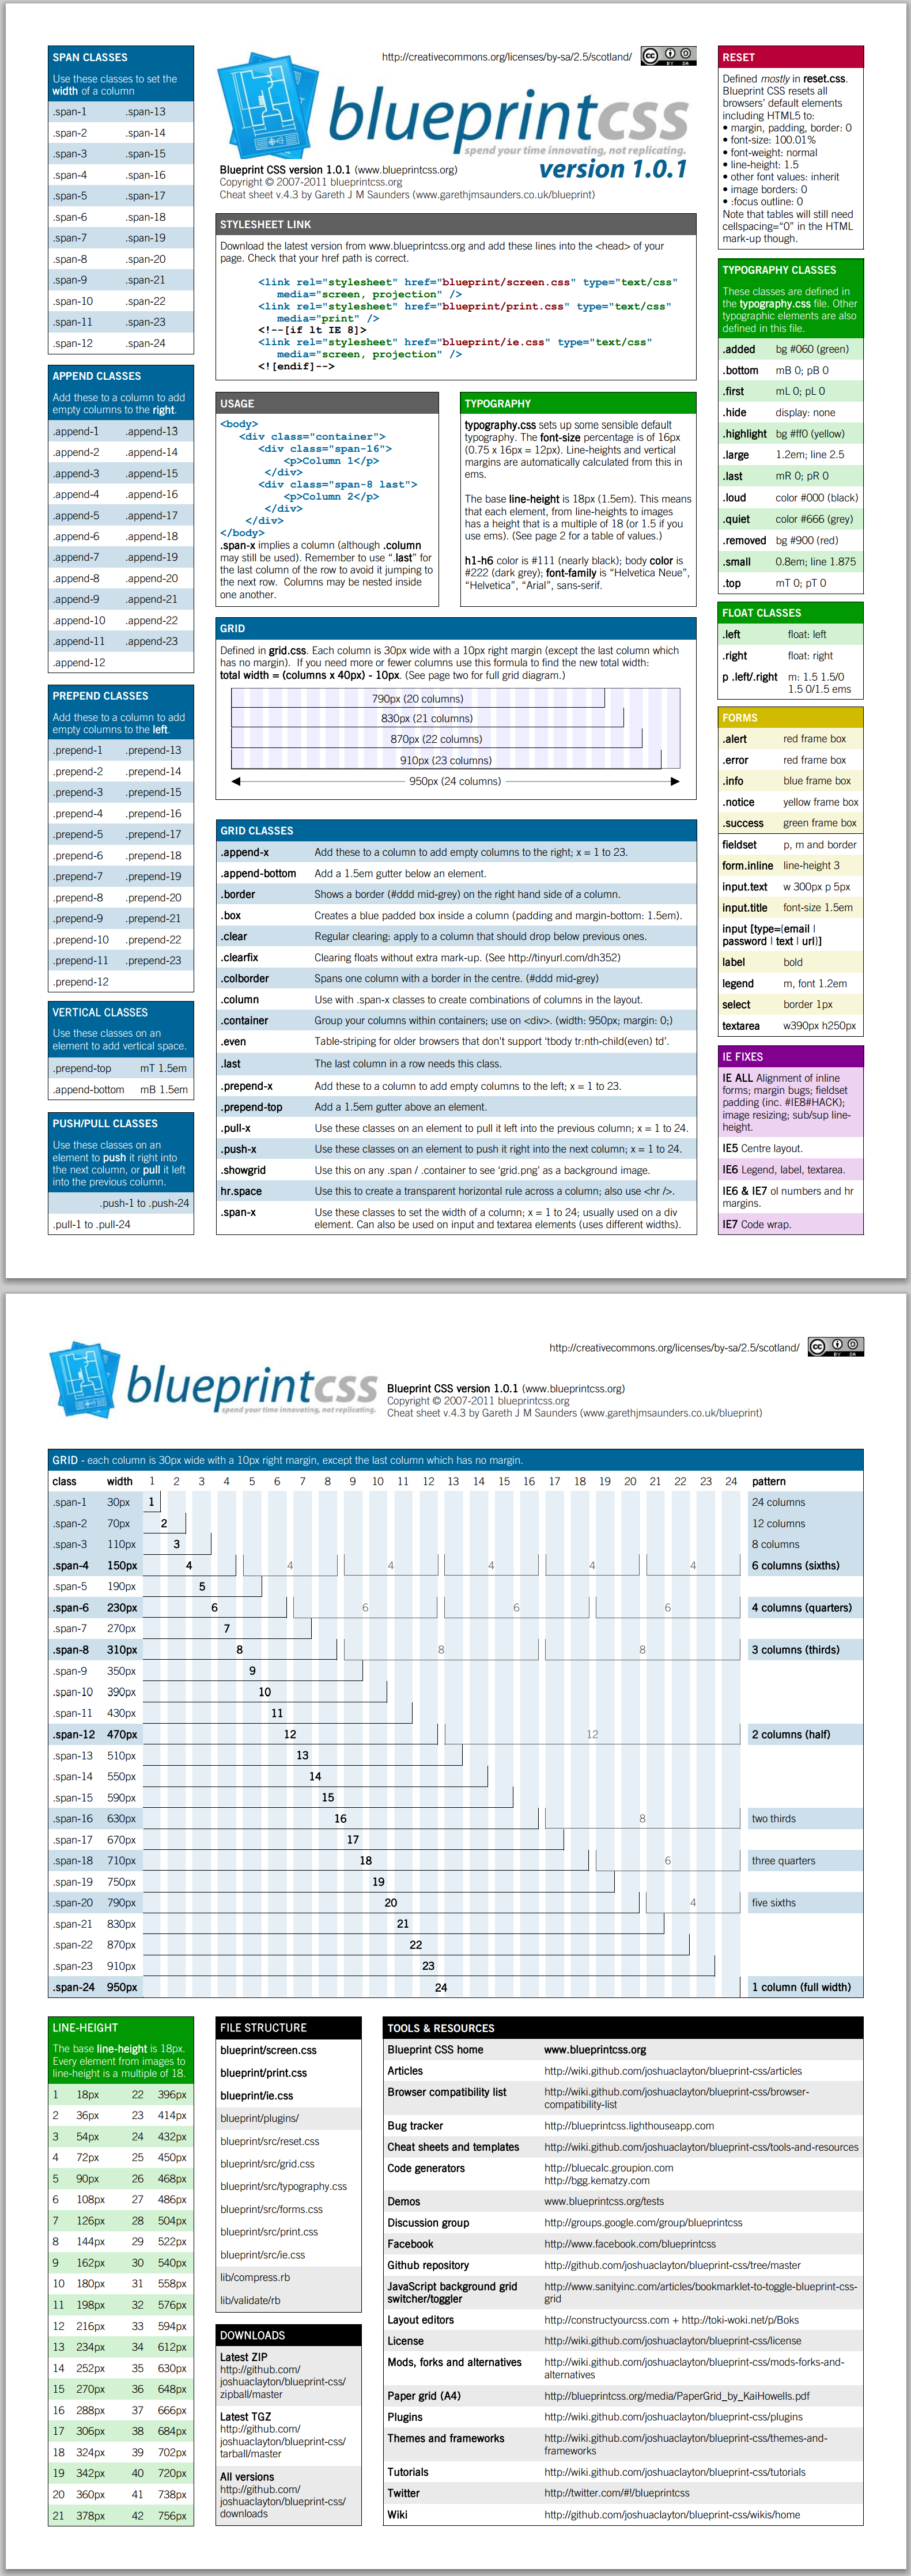 Blueprint css a css framework for web designers and developers css blueprint css a css framework for web designers and developers css mustread malvernweather Image collections